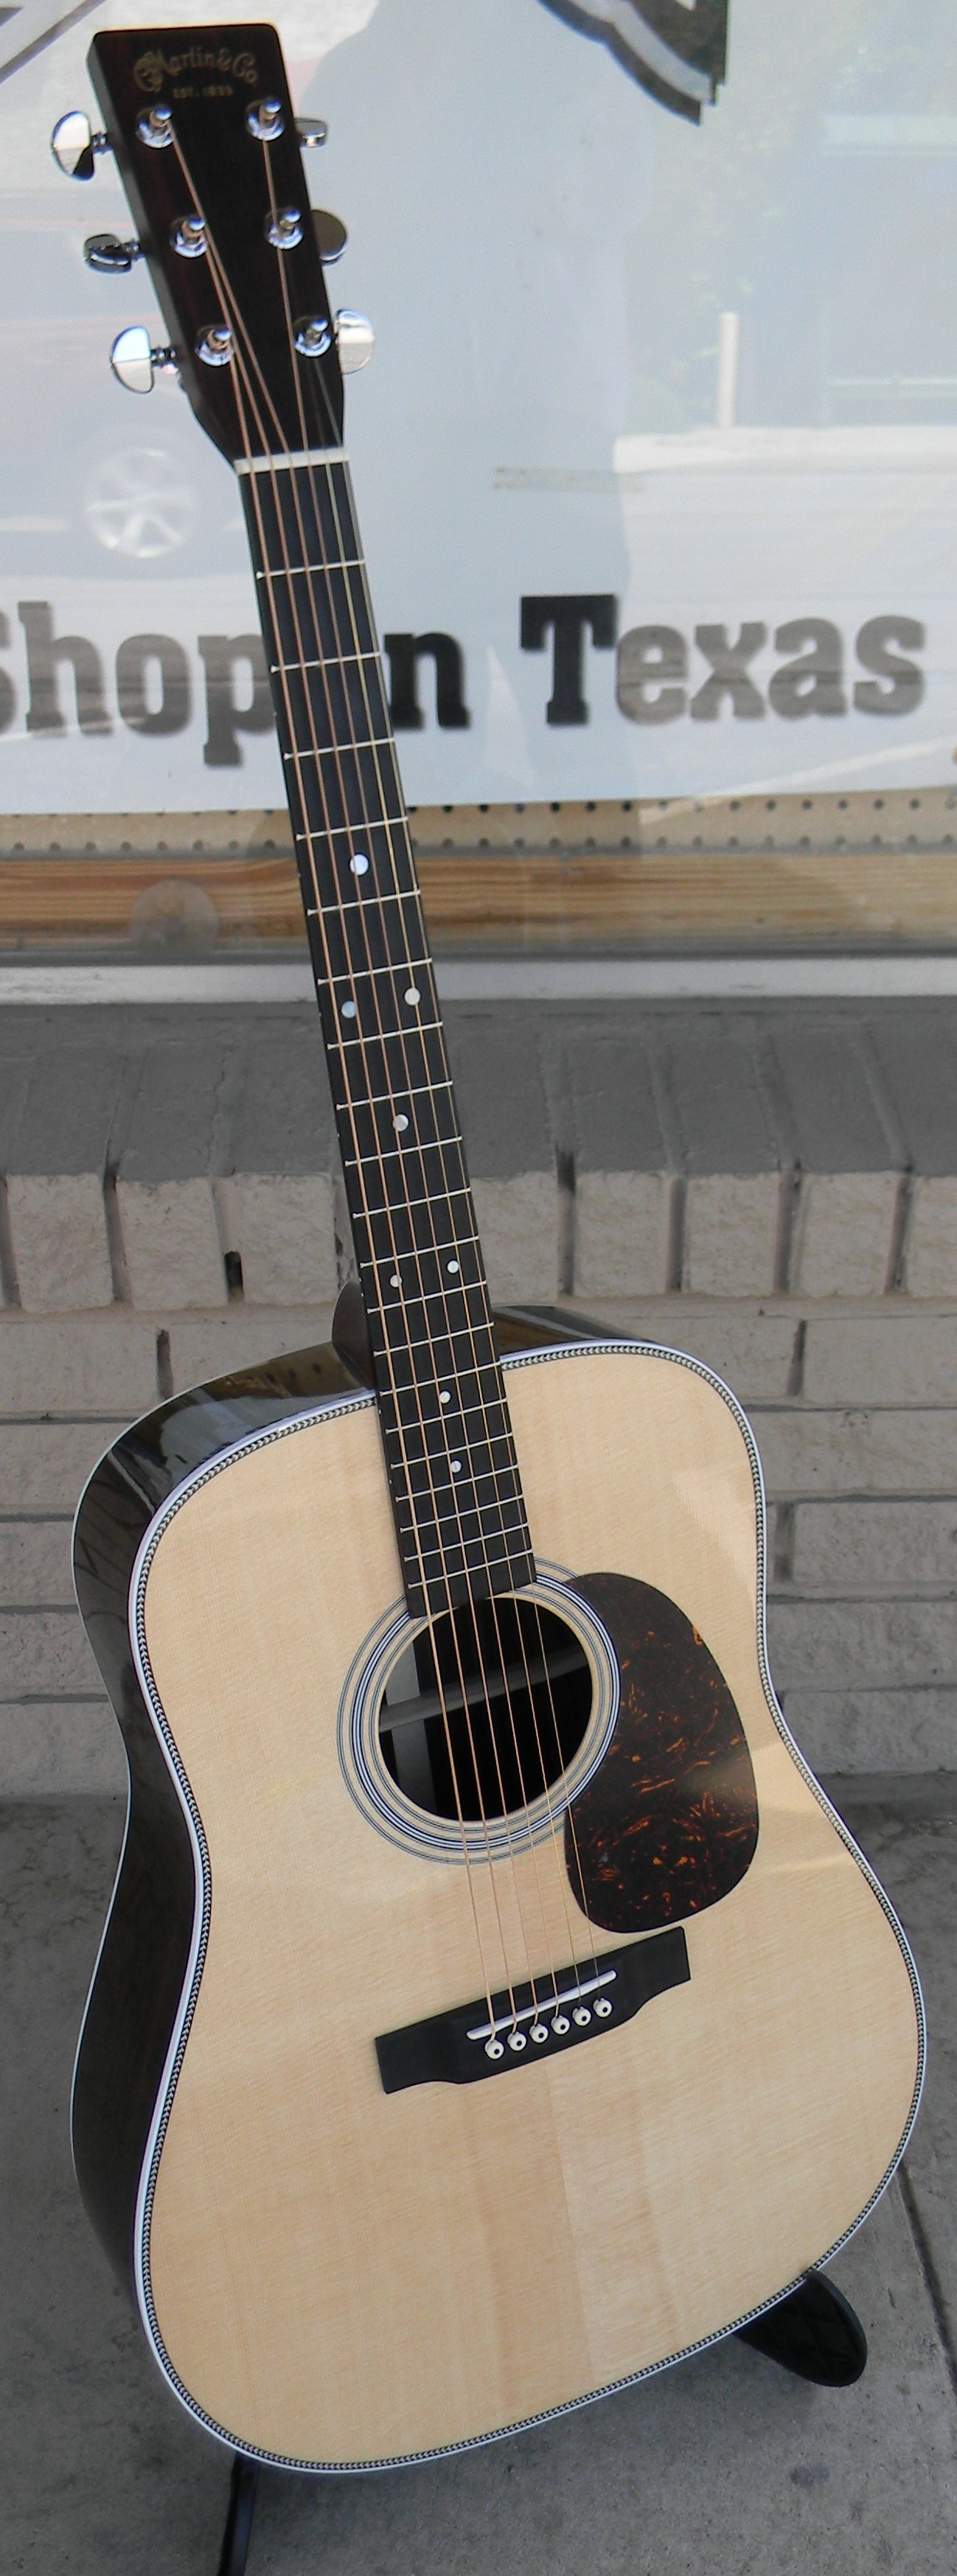 HD 28 The benchmark for what a scallop braced rosewood dreadnought should be. $3,059.00